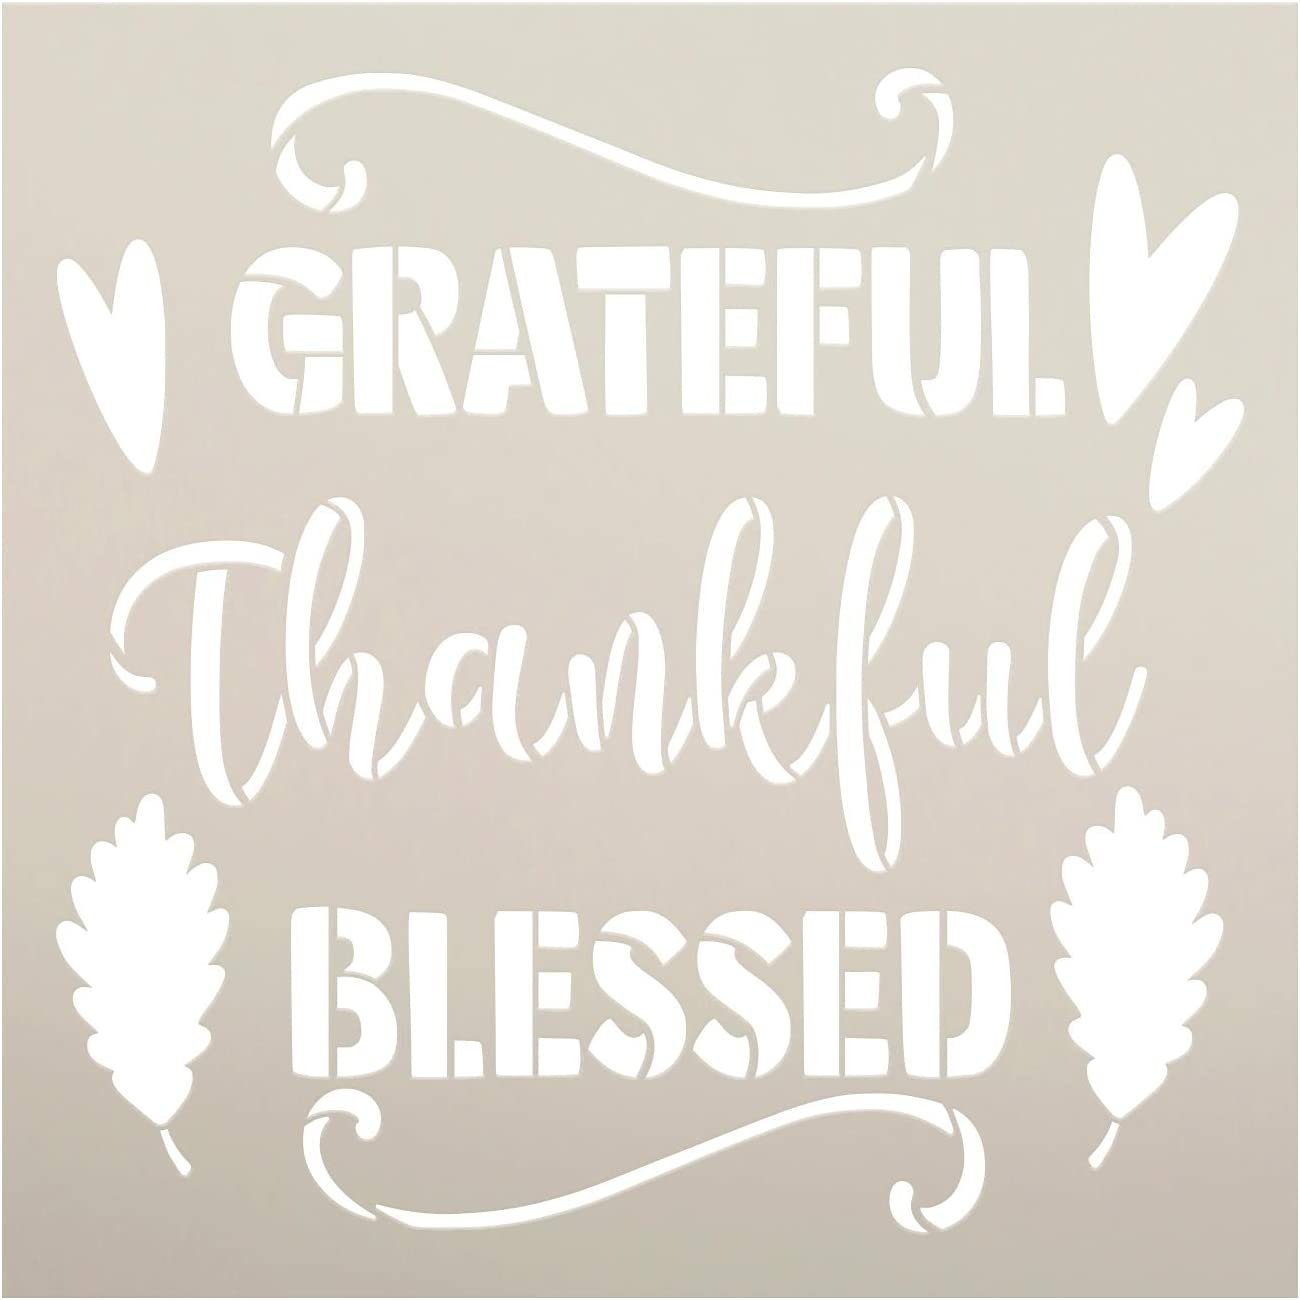 Grateful Thankful Blessed Stencil By Studior12 Diy Autumn Farmhouse Home Decor Craft Paint Wood Sign Reusable Mylar Template Leaves Cursive Script Gift Select Size Creative Arts Lifestyle